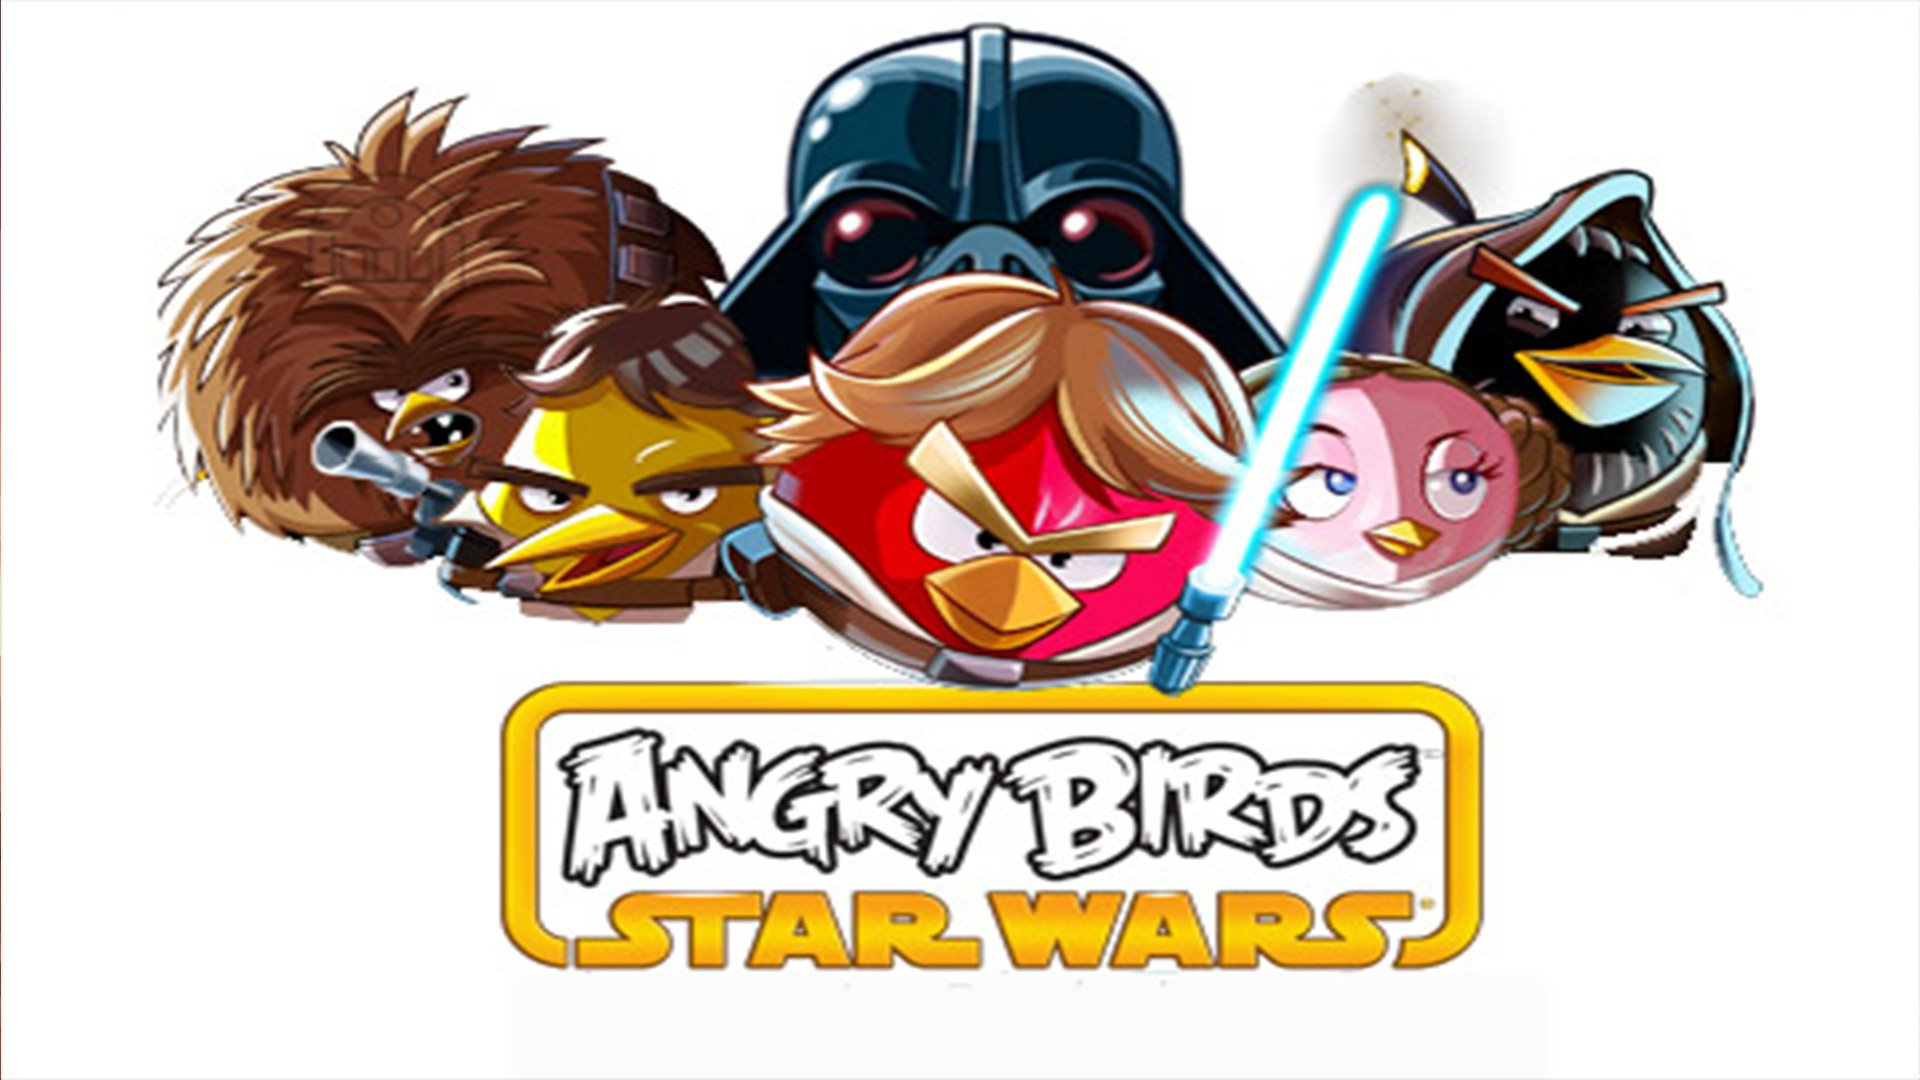 6 Angry Birds Star Wars Hd Wallpapers Background Images